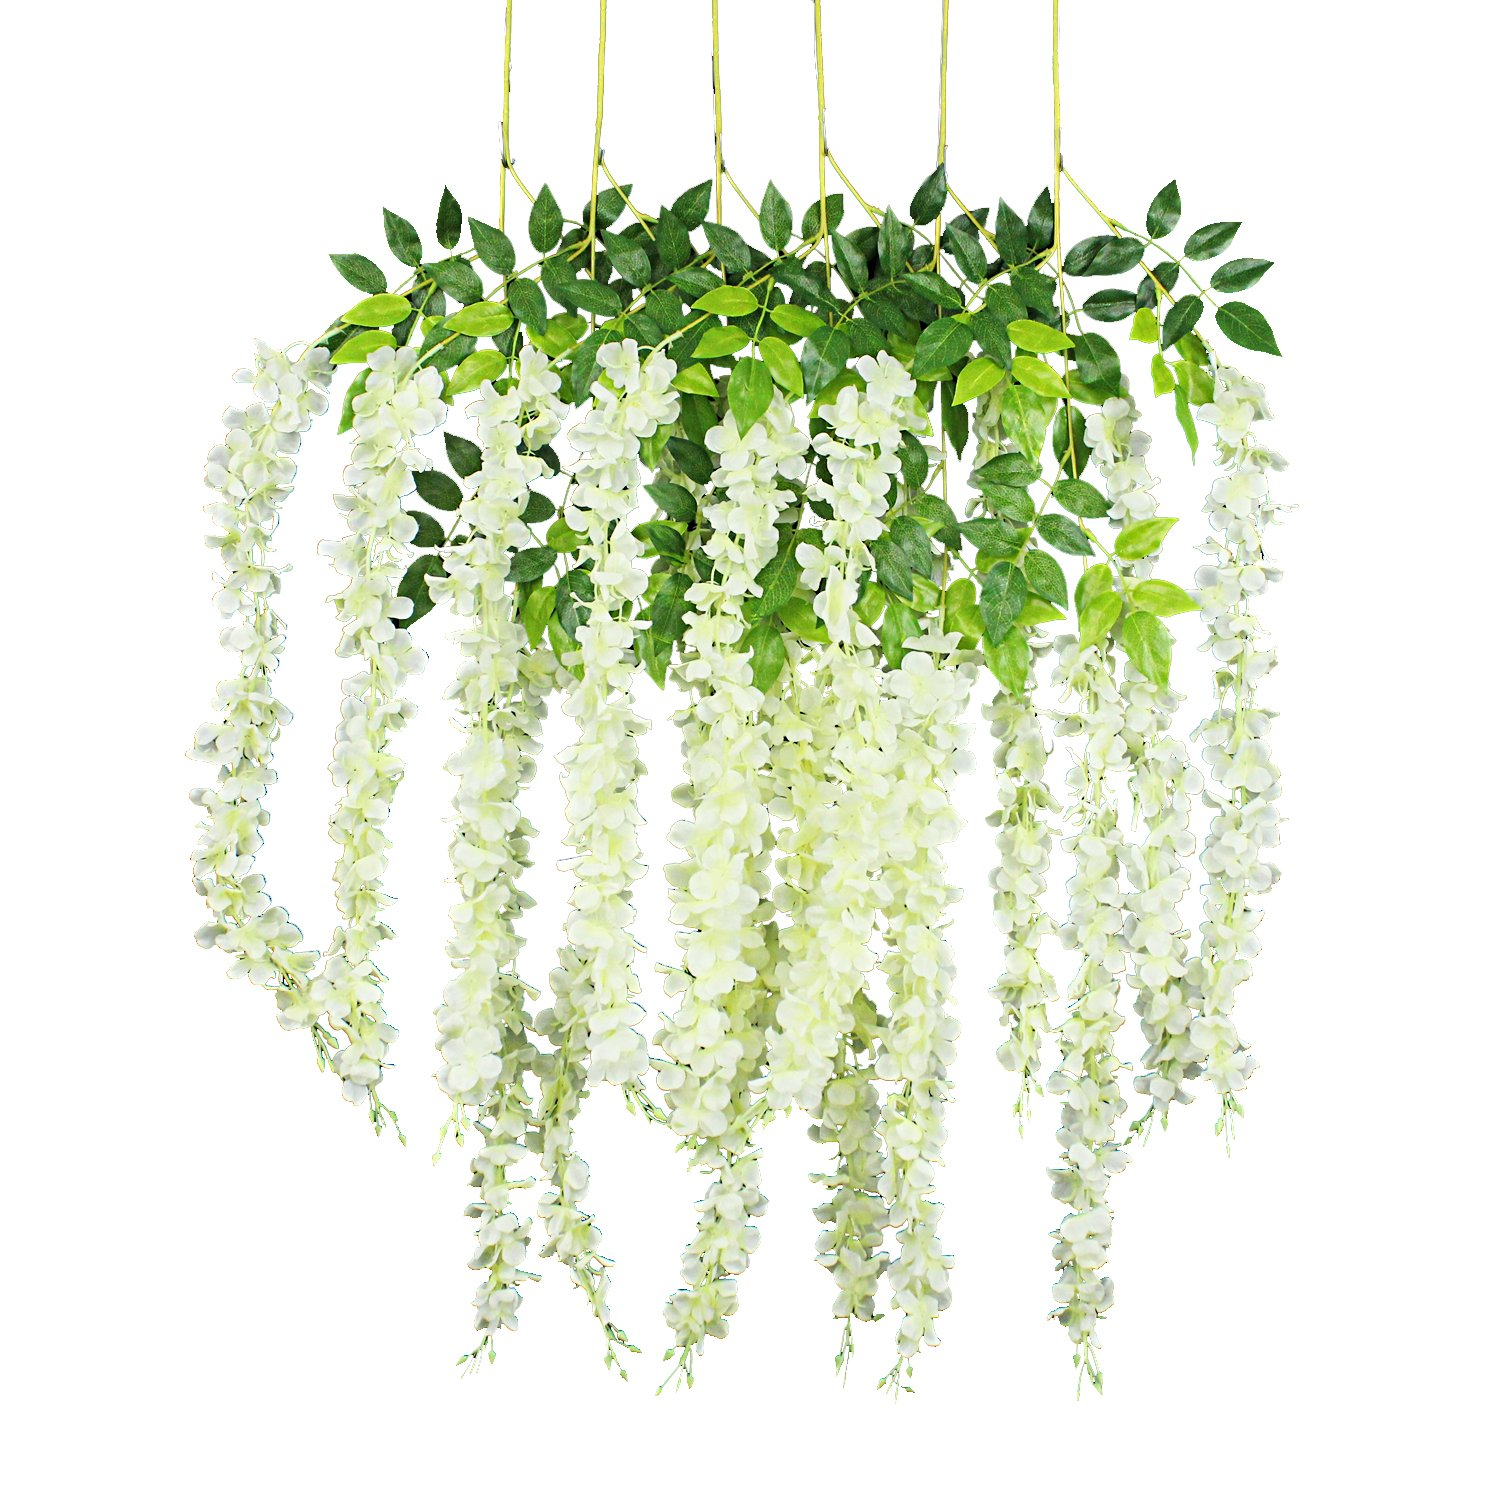 6 Pieces Bushy Flowers 45 inch Artificial Silk Wisteria Vine Ratta Hanging Flower Garland Hanging for Wedding Party Garden Outdoor Greenery Office Wall Decoration (Milk White)